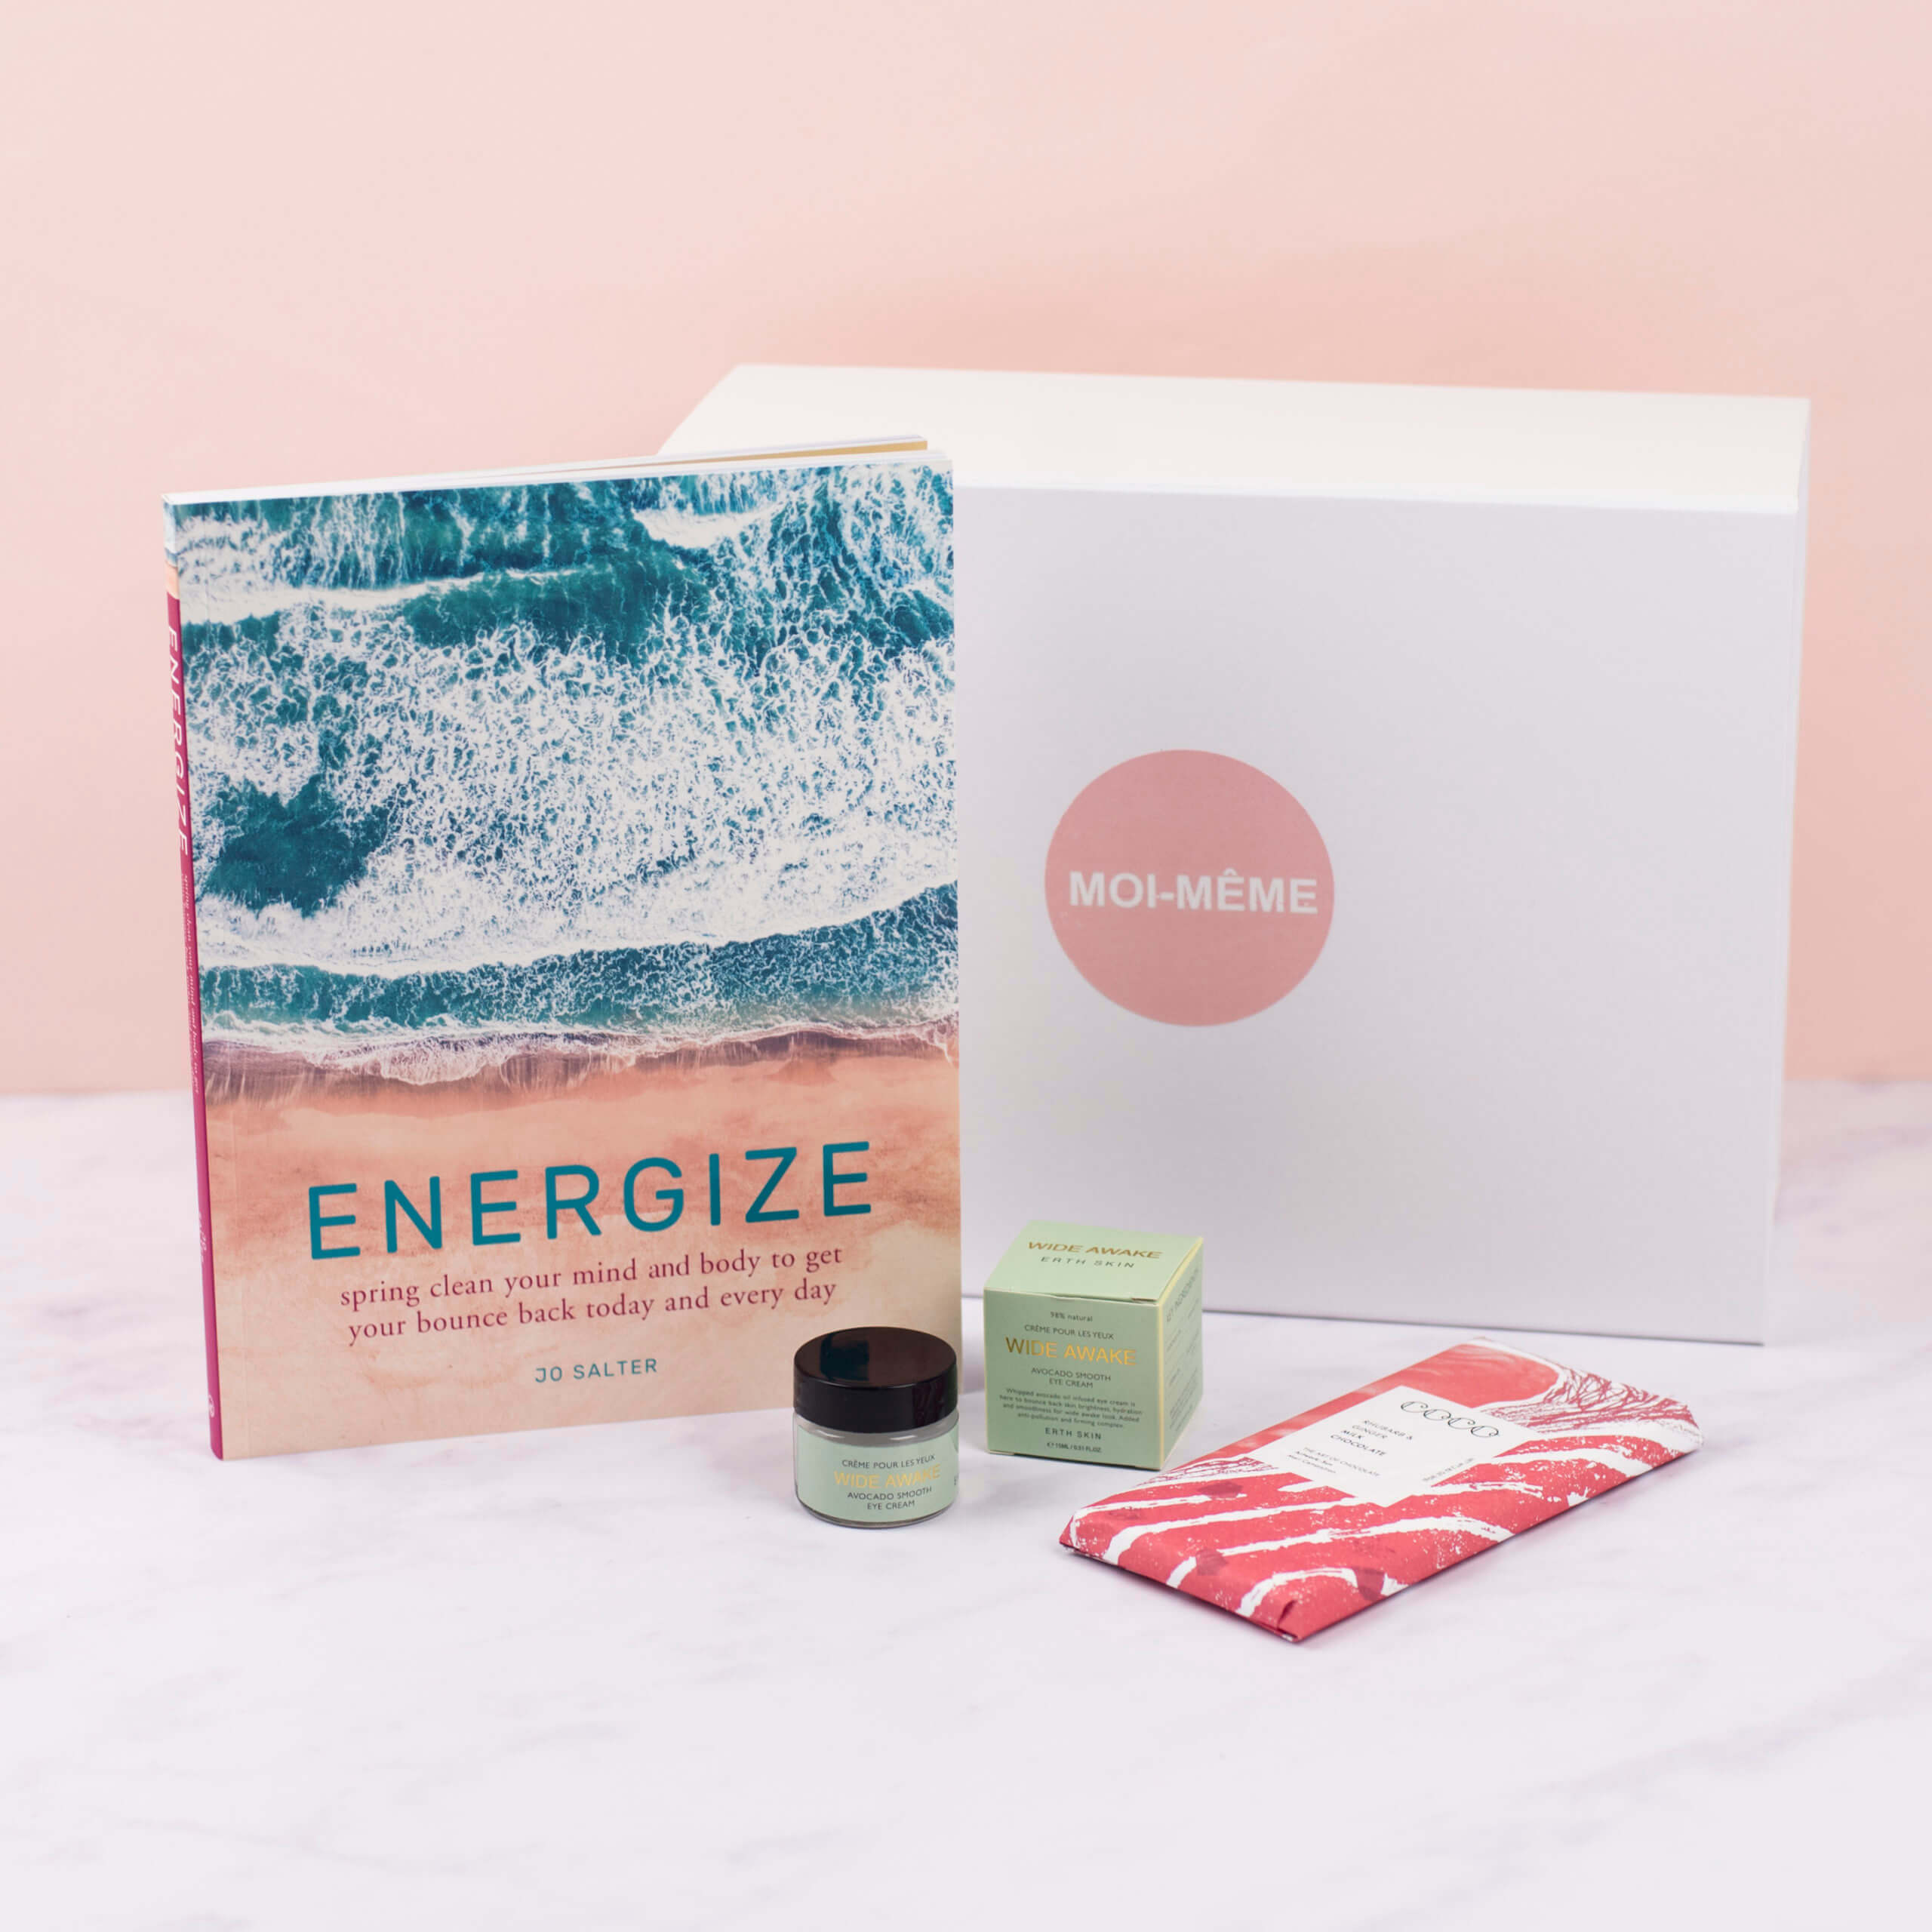 The Energise Box